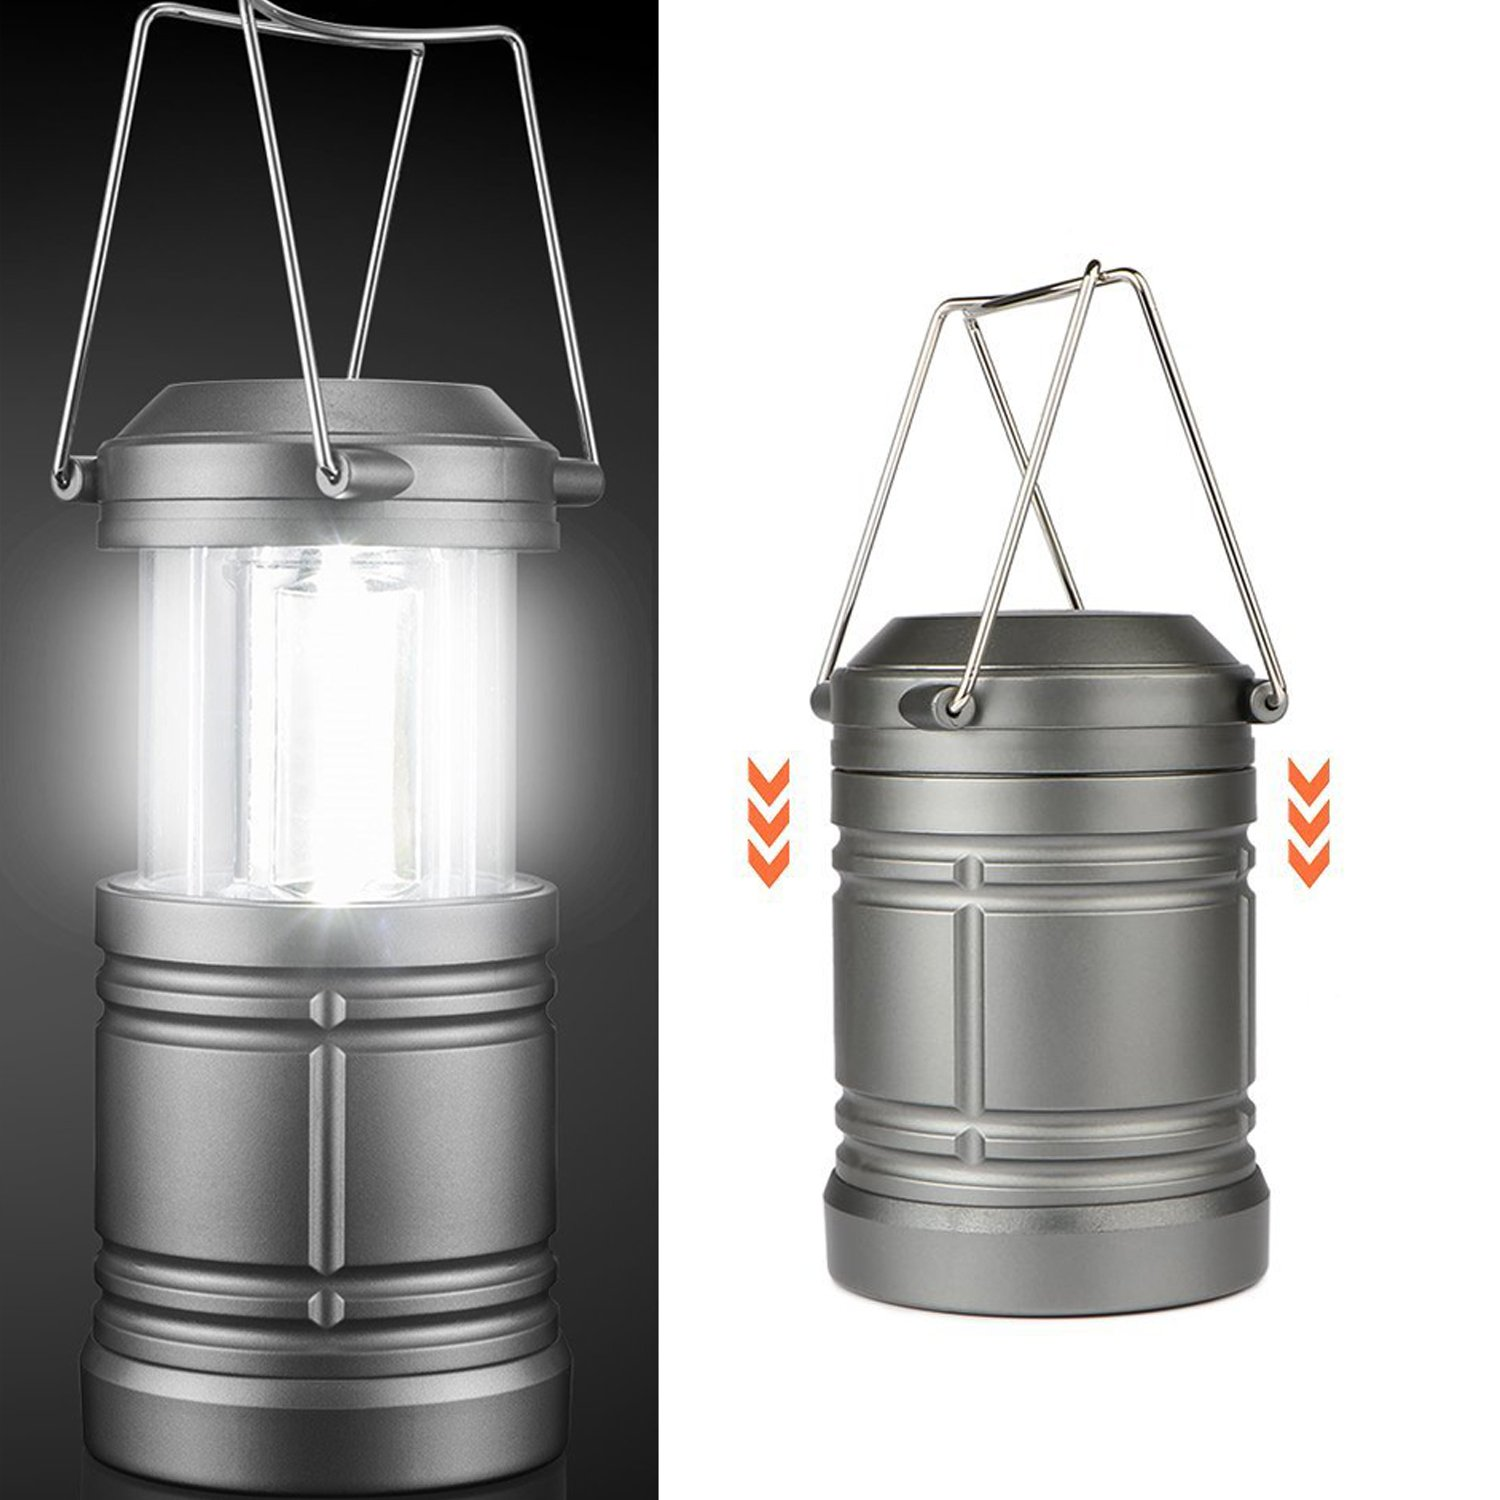 Lantern tactical - a variety and application